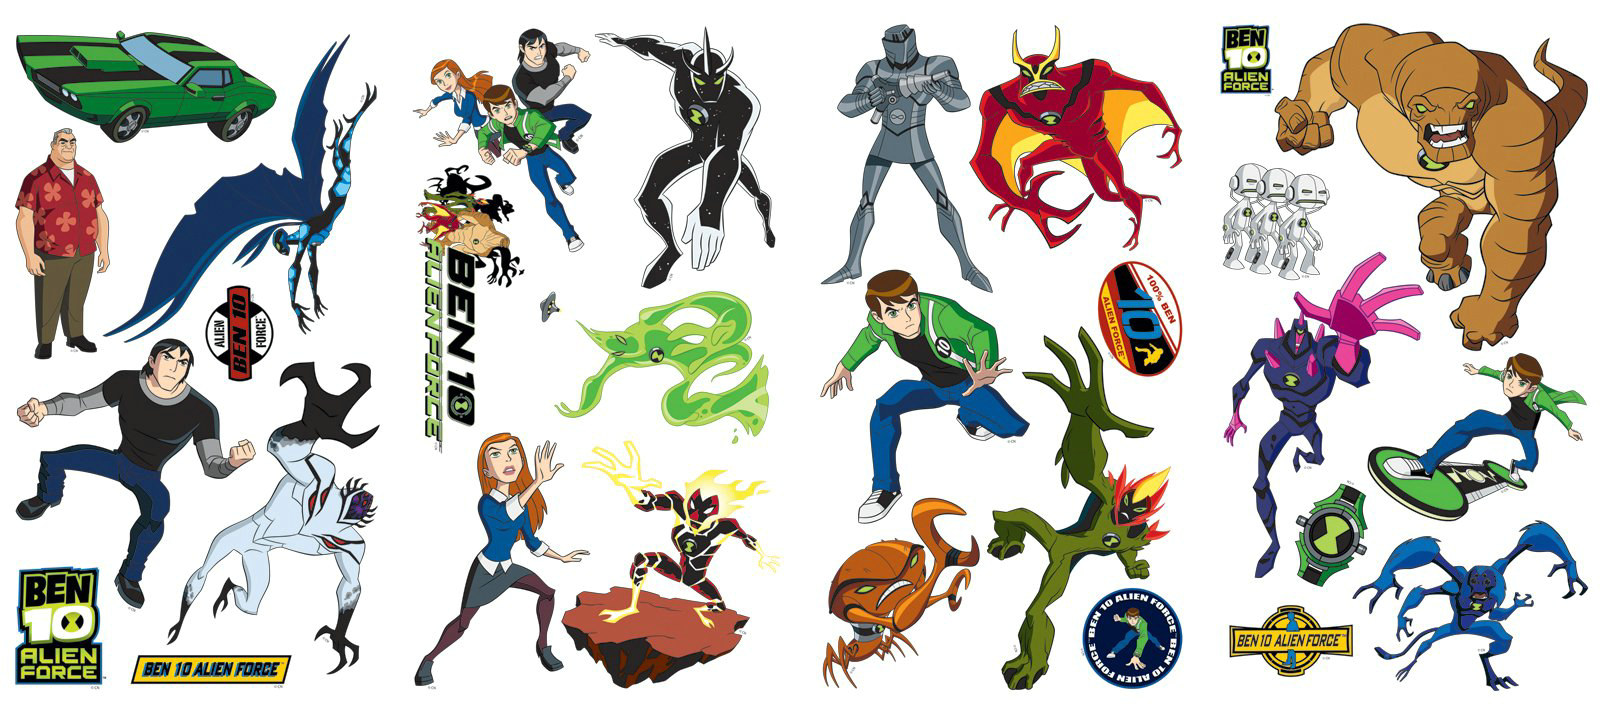 Ben 10 Alien Force Removable Wall Decorations - Click Image to Close